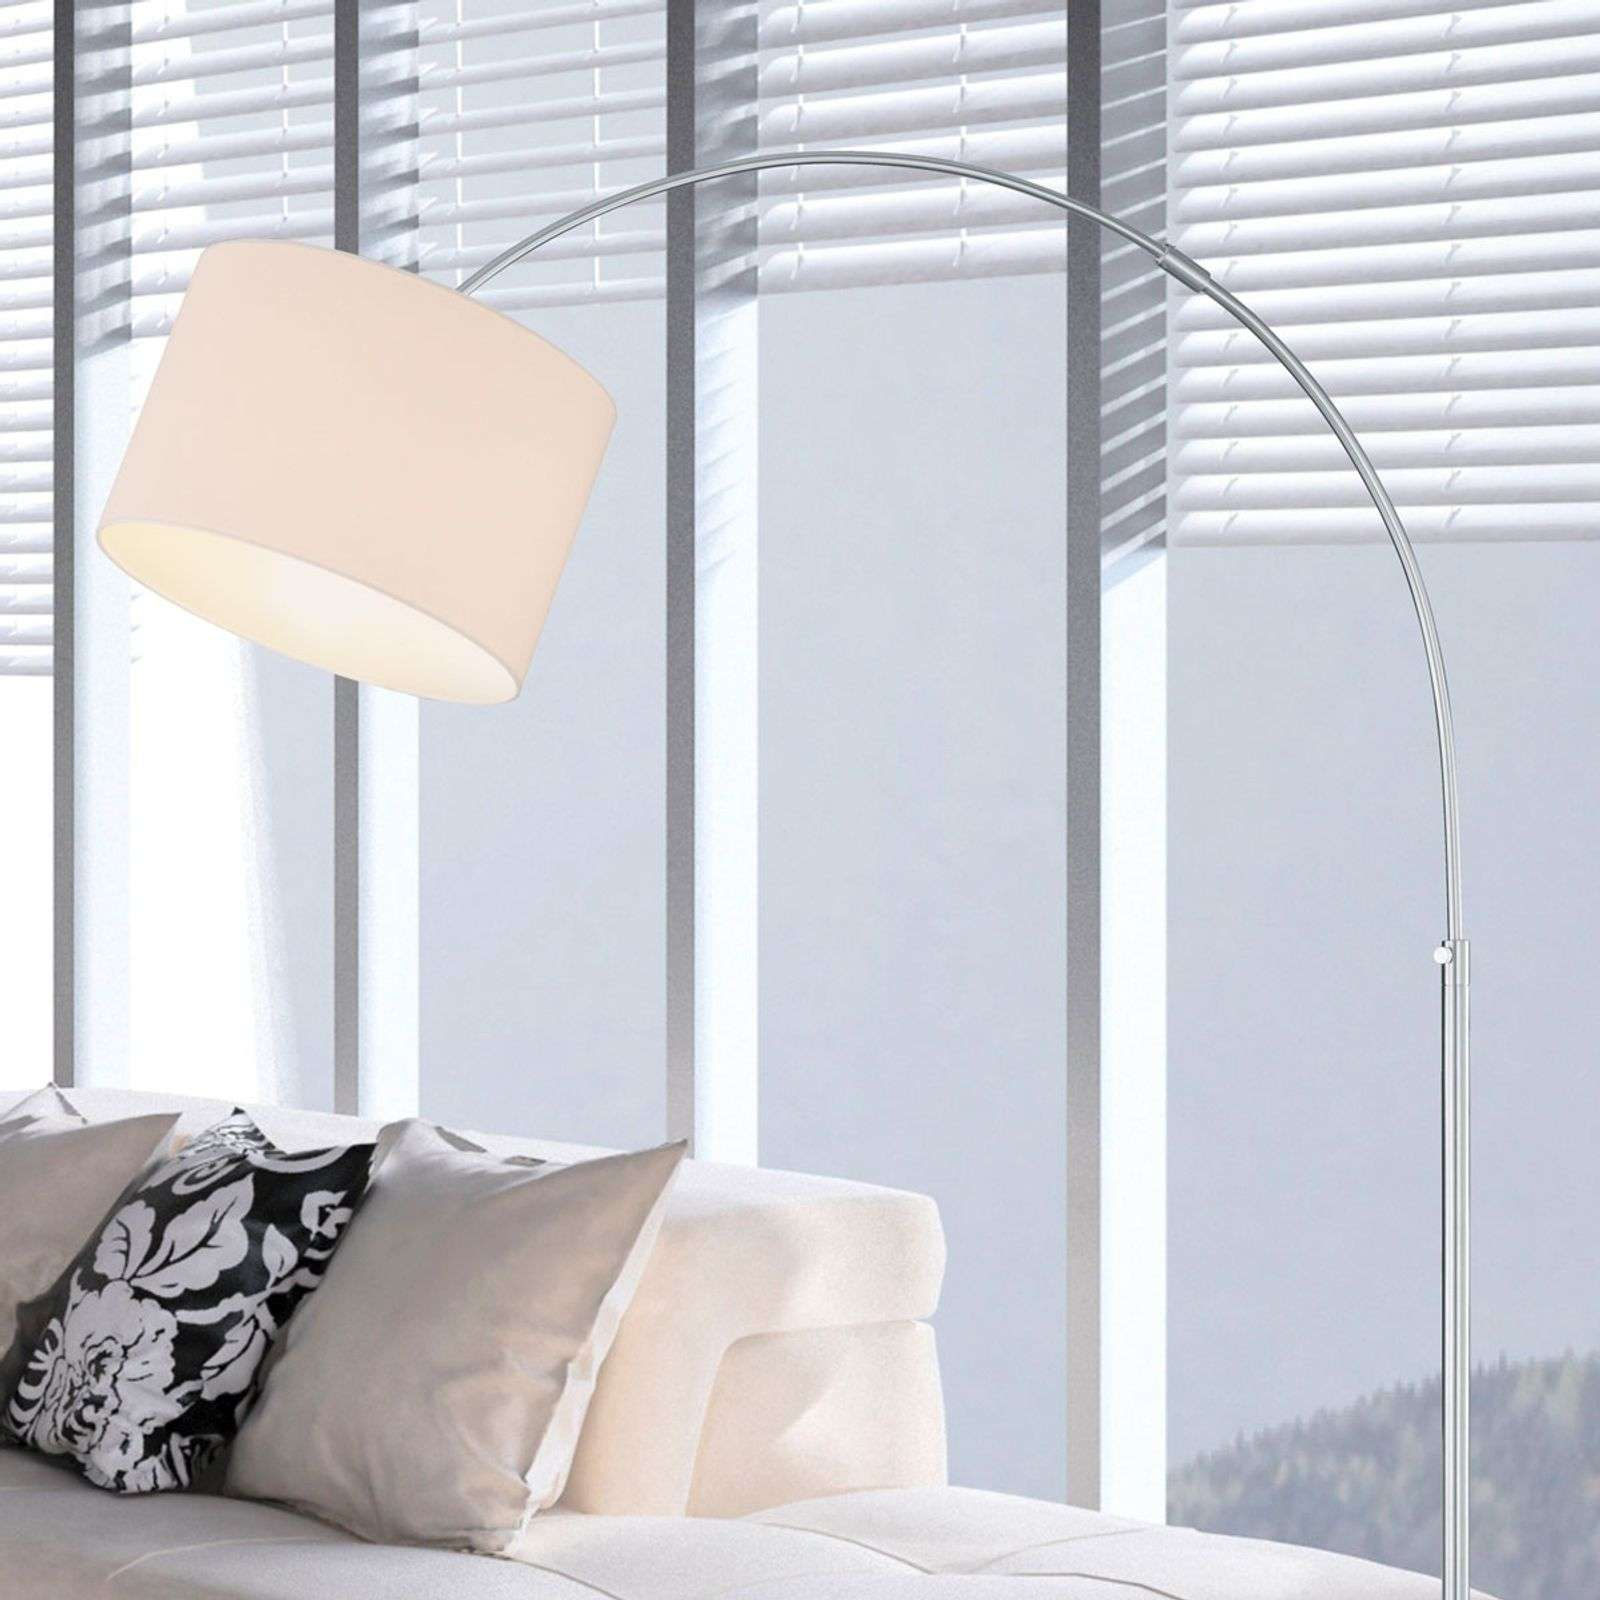 lampadaire arqu risa avec abat jour textile ccdh moselle. Black Bedroom Furniture Sets. Home Design Ideas